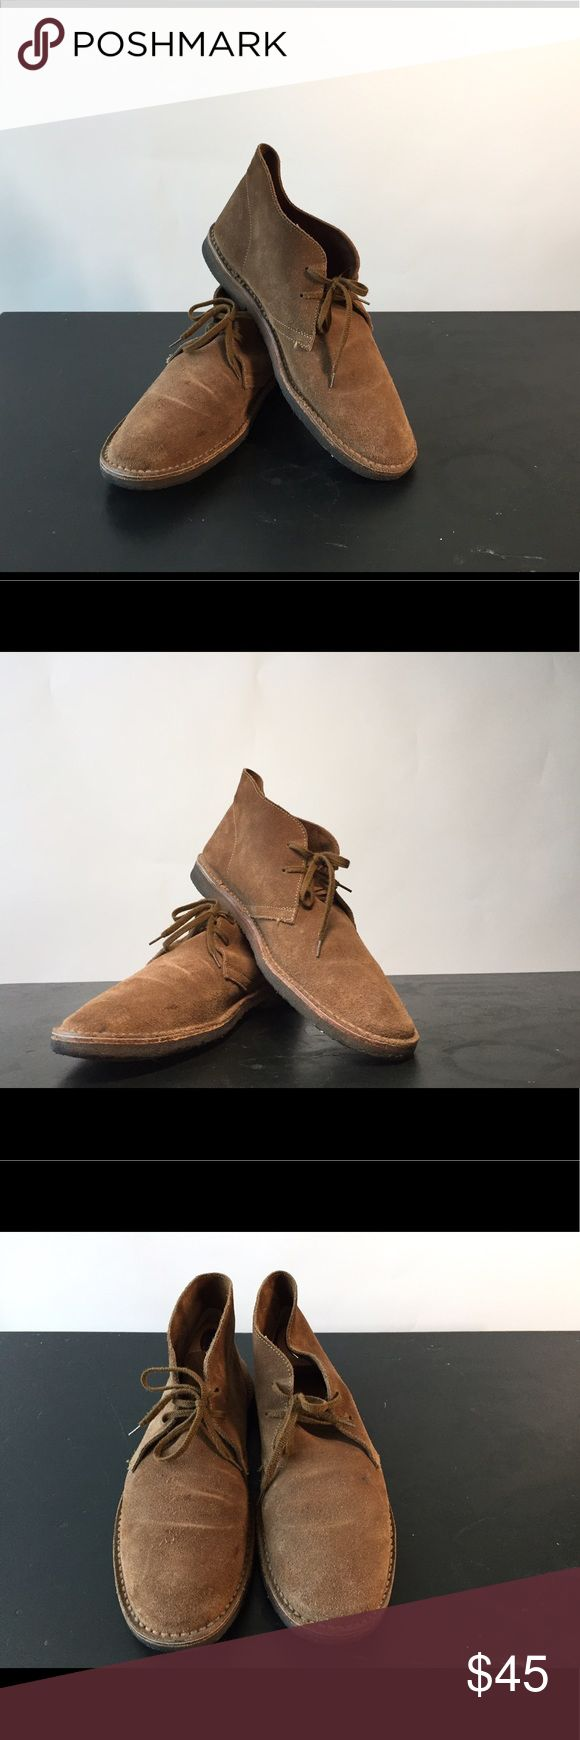 Men's J Crew brown suede desert boots. SZ 10 Nice of pair of J Crew suede chukka boots. Really stylish with jeans. Size 10 men's. Rubber gummy soles J Crew Shoes Chukka Boots